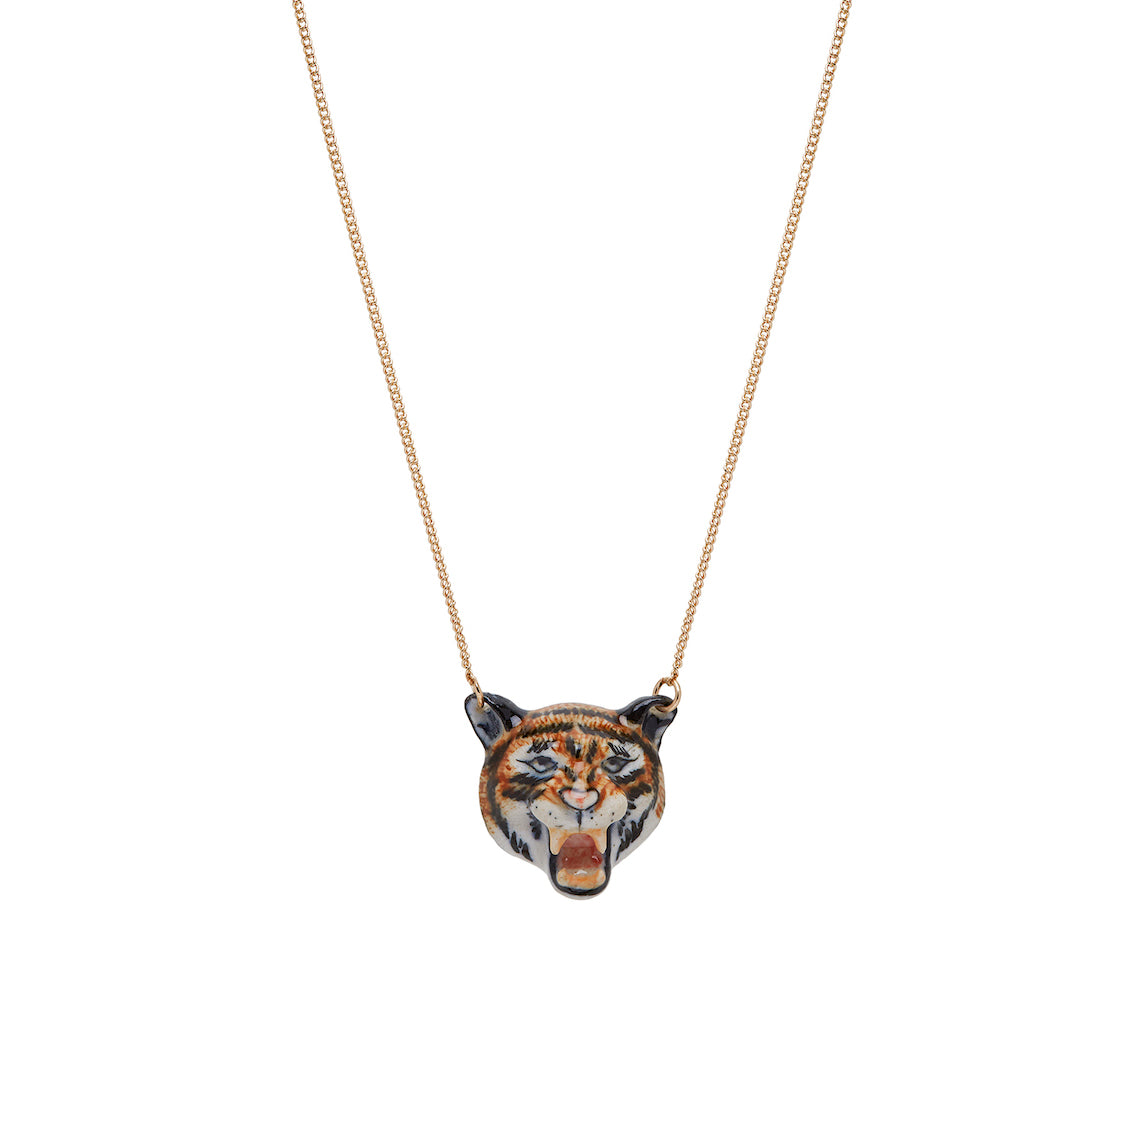 Small Roaring Tiger Head Necklace